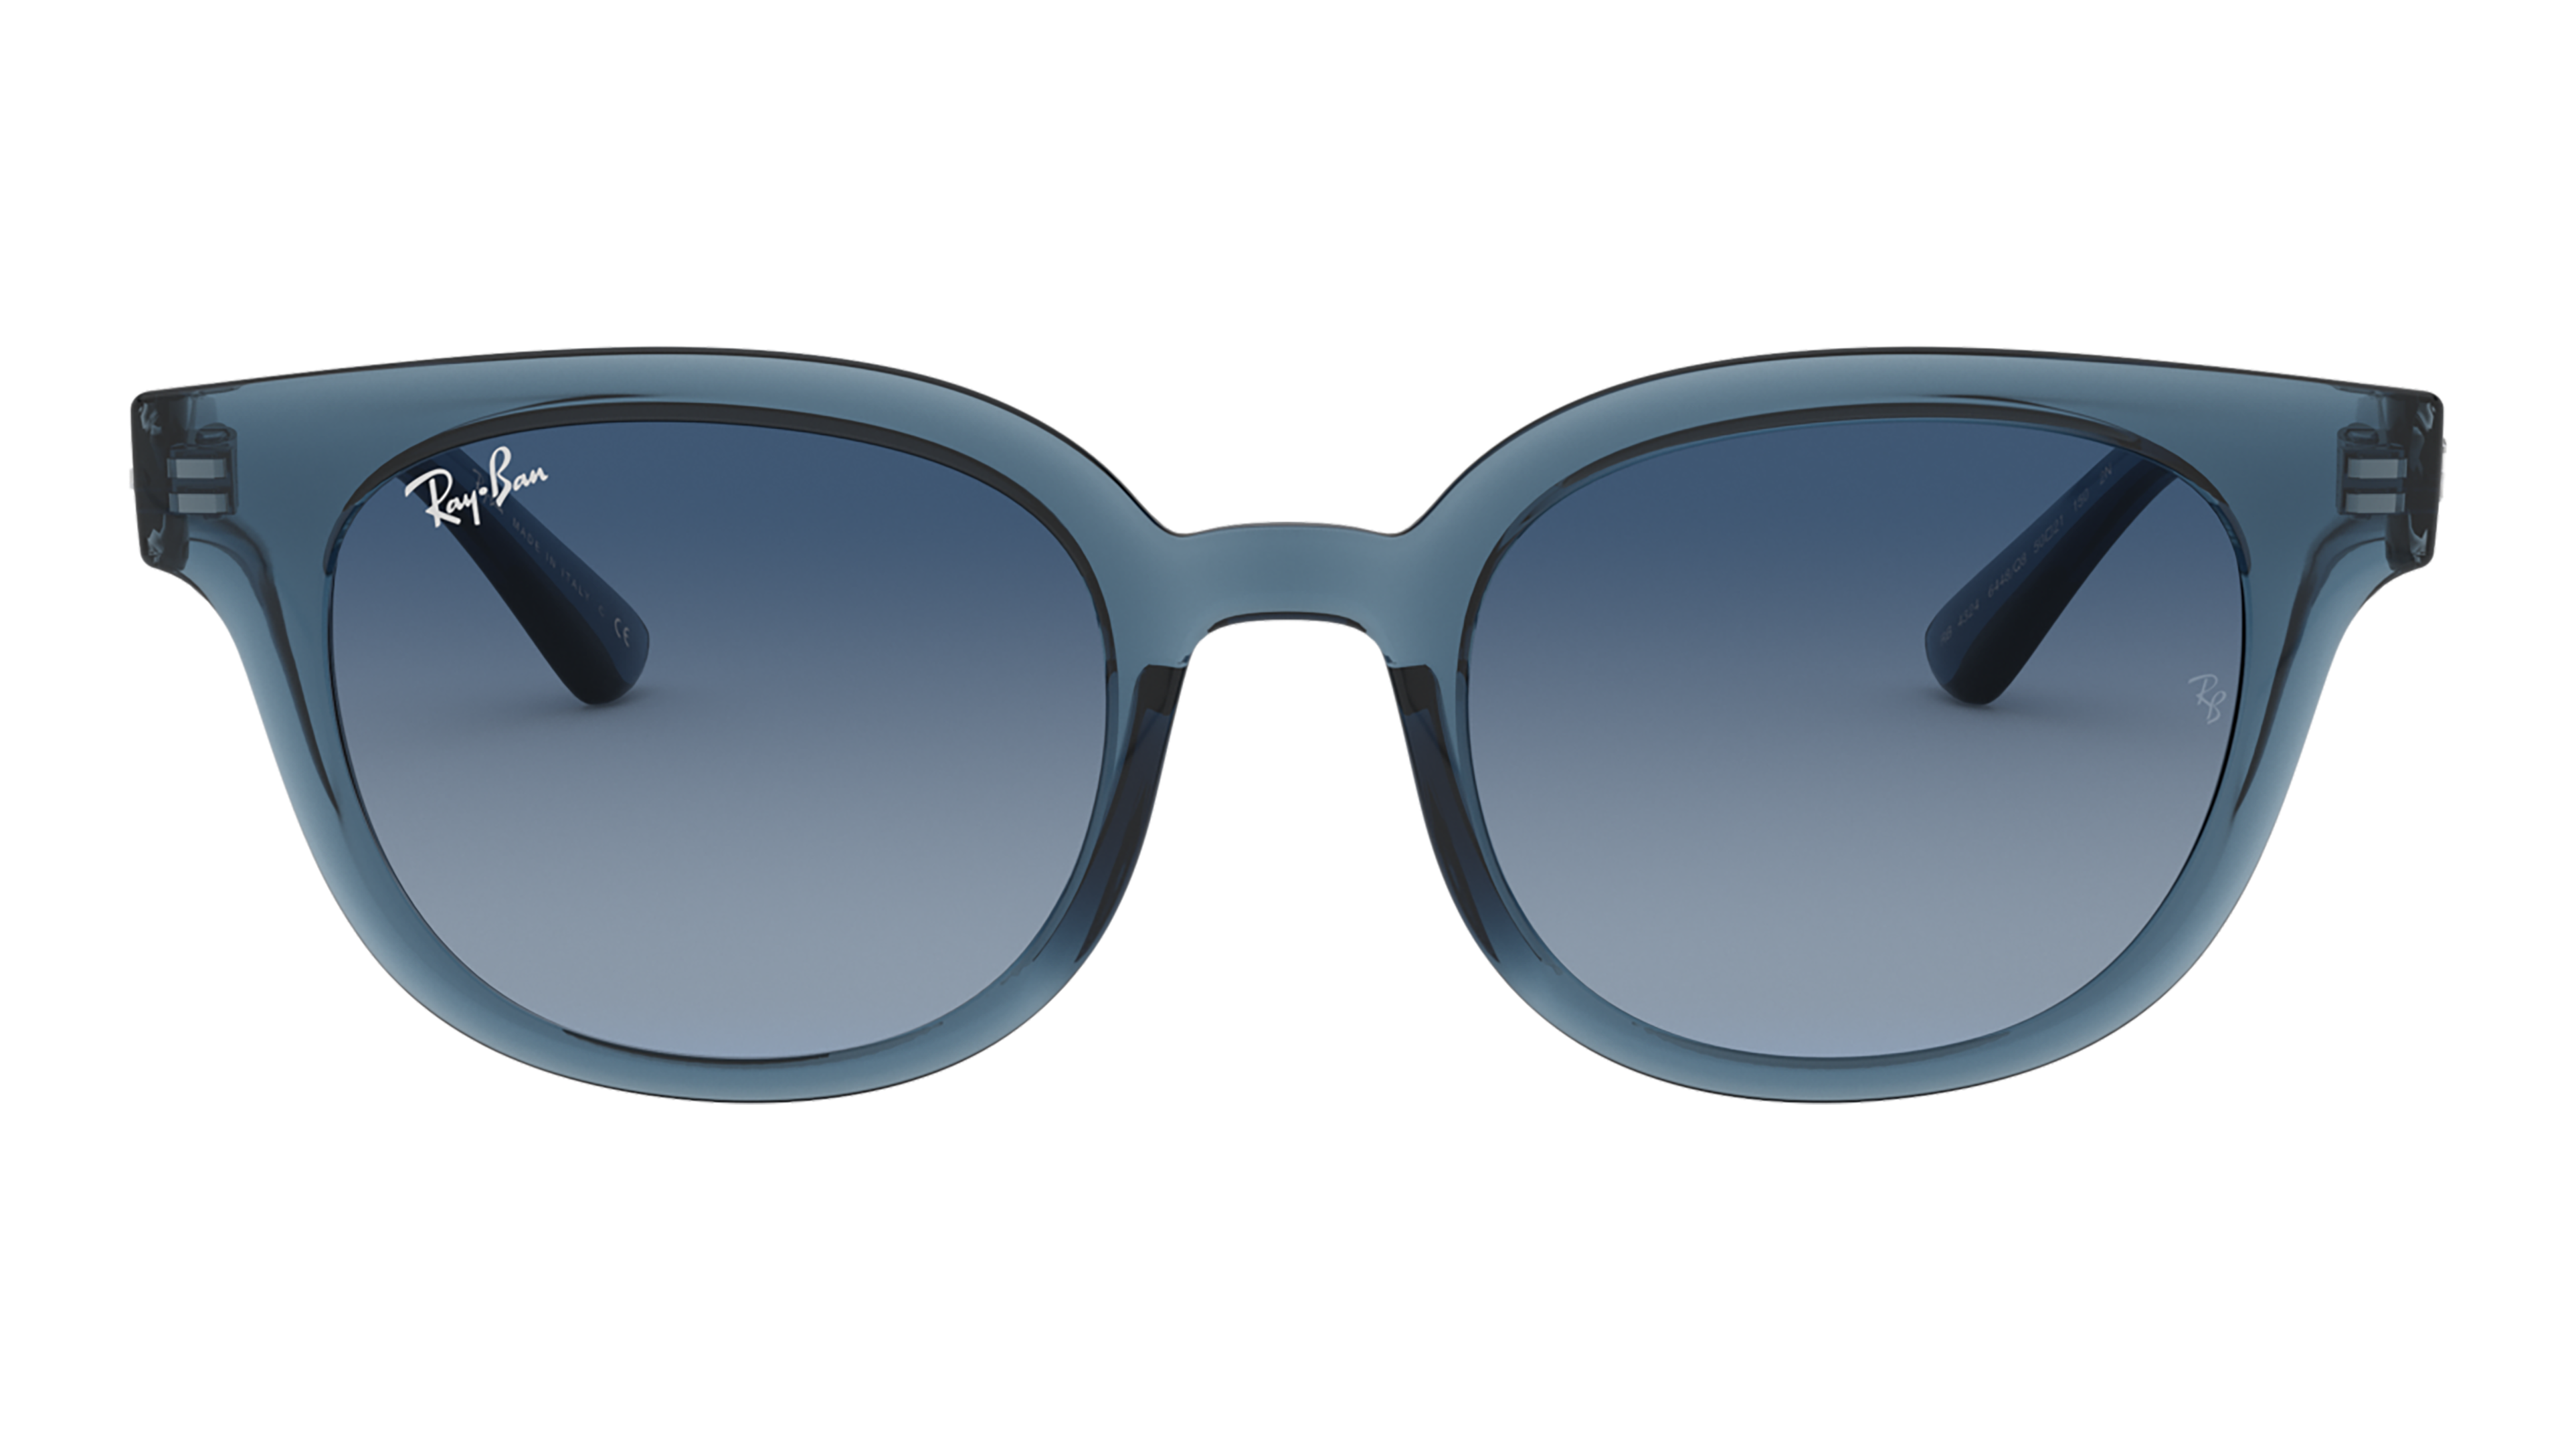 Front Ray-Ban Ray-Ban 0RB4324 6448Q8 50/21 Blauw/Blauw